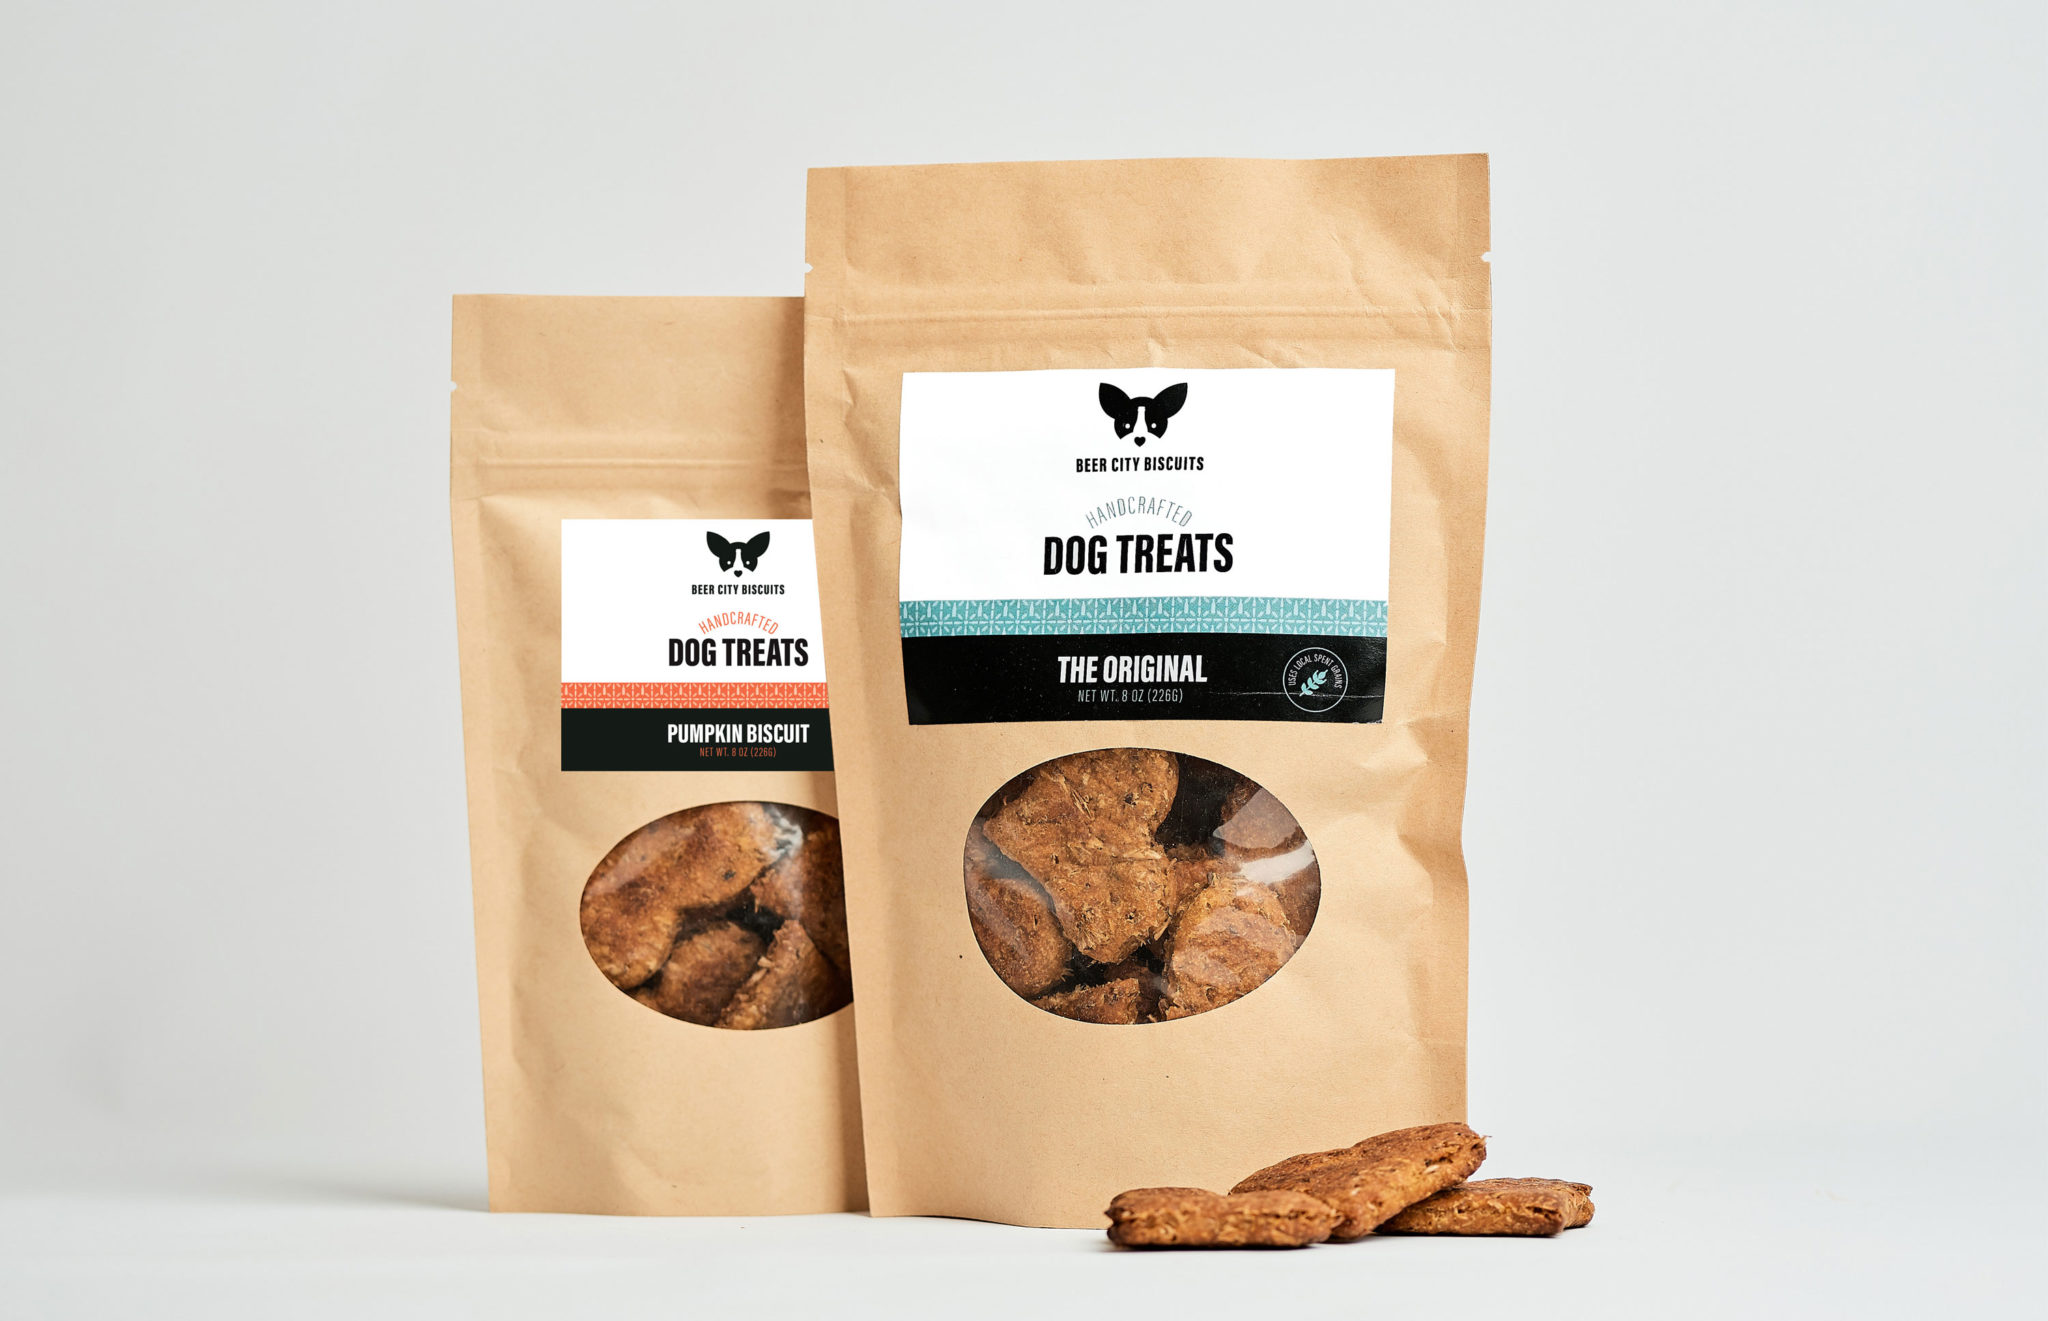 Beer City Biscuits dog treat package